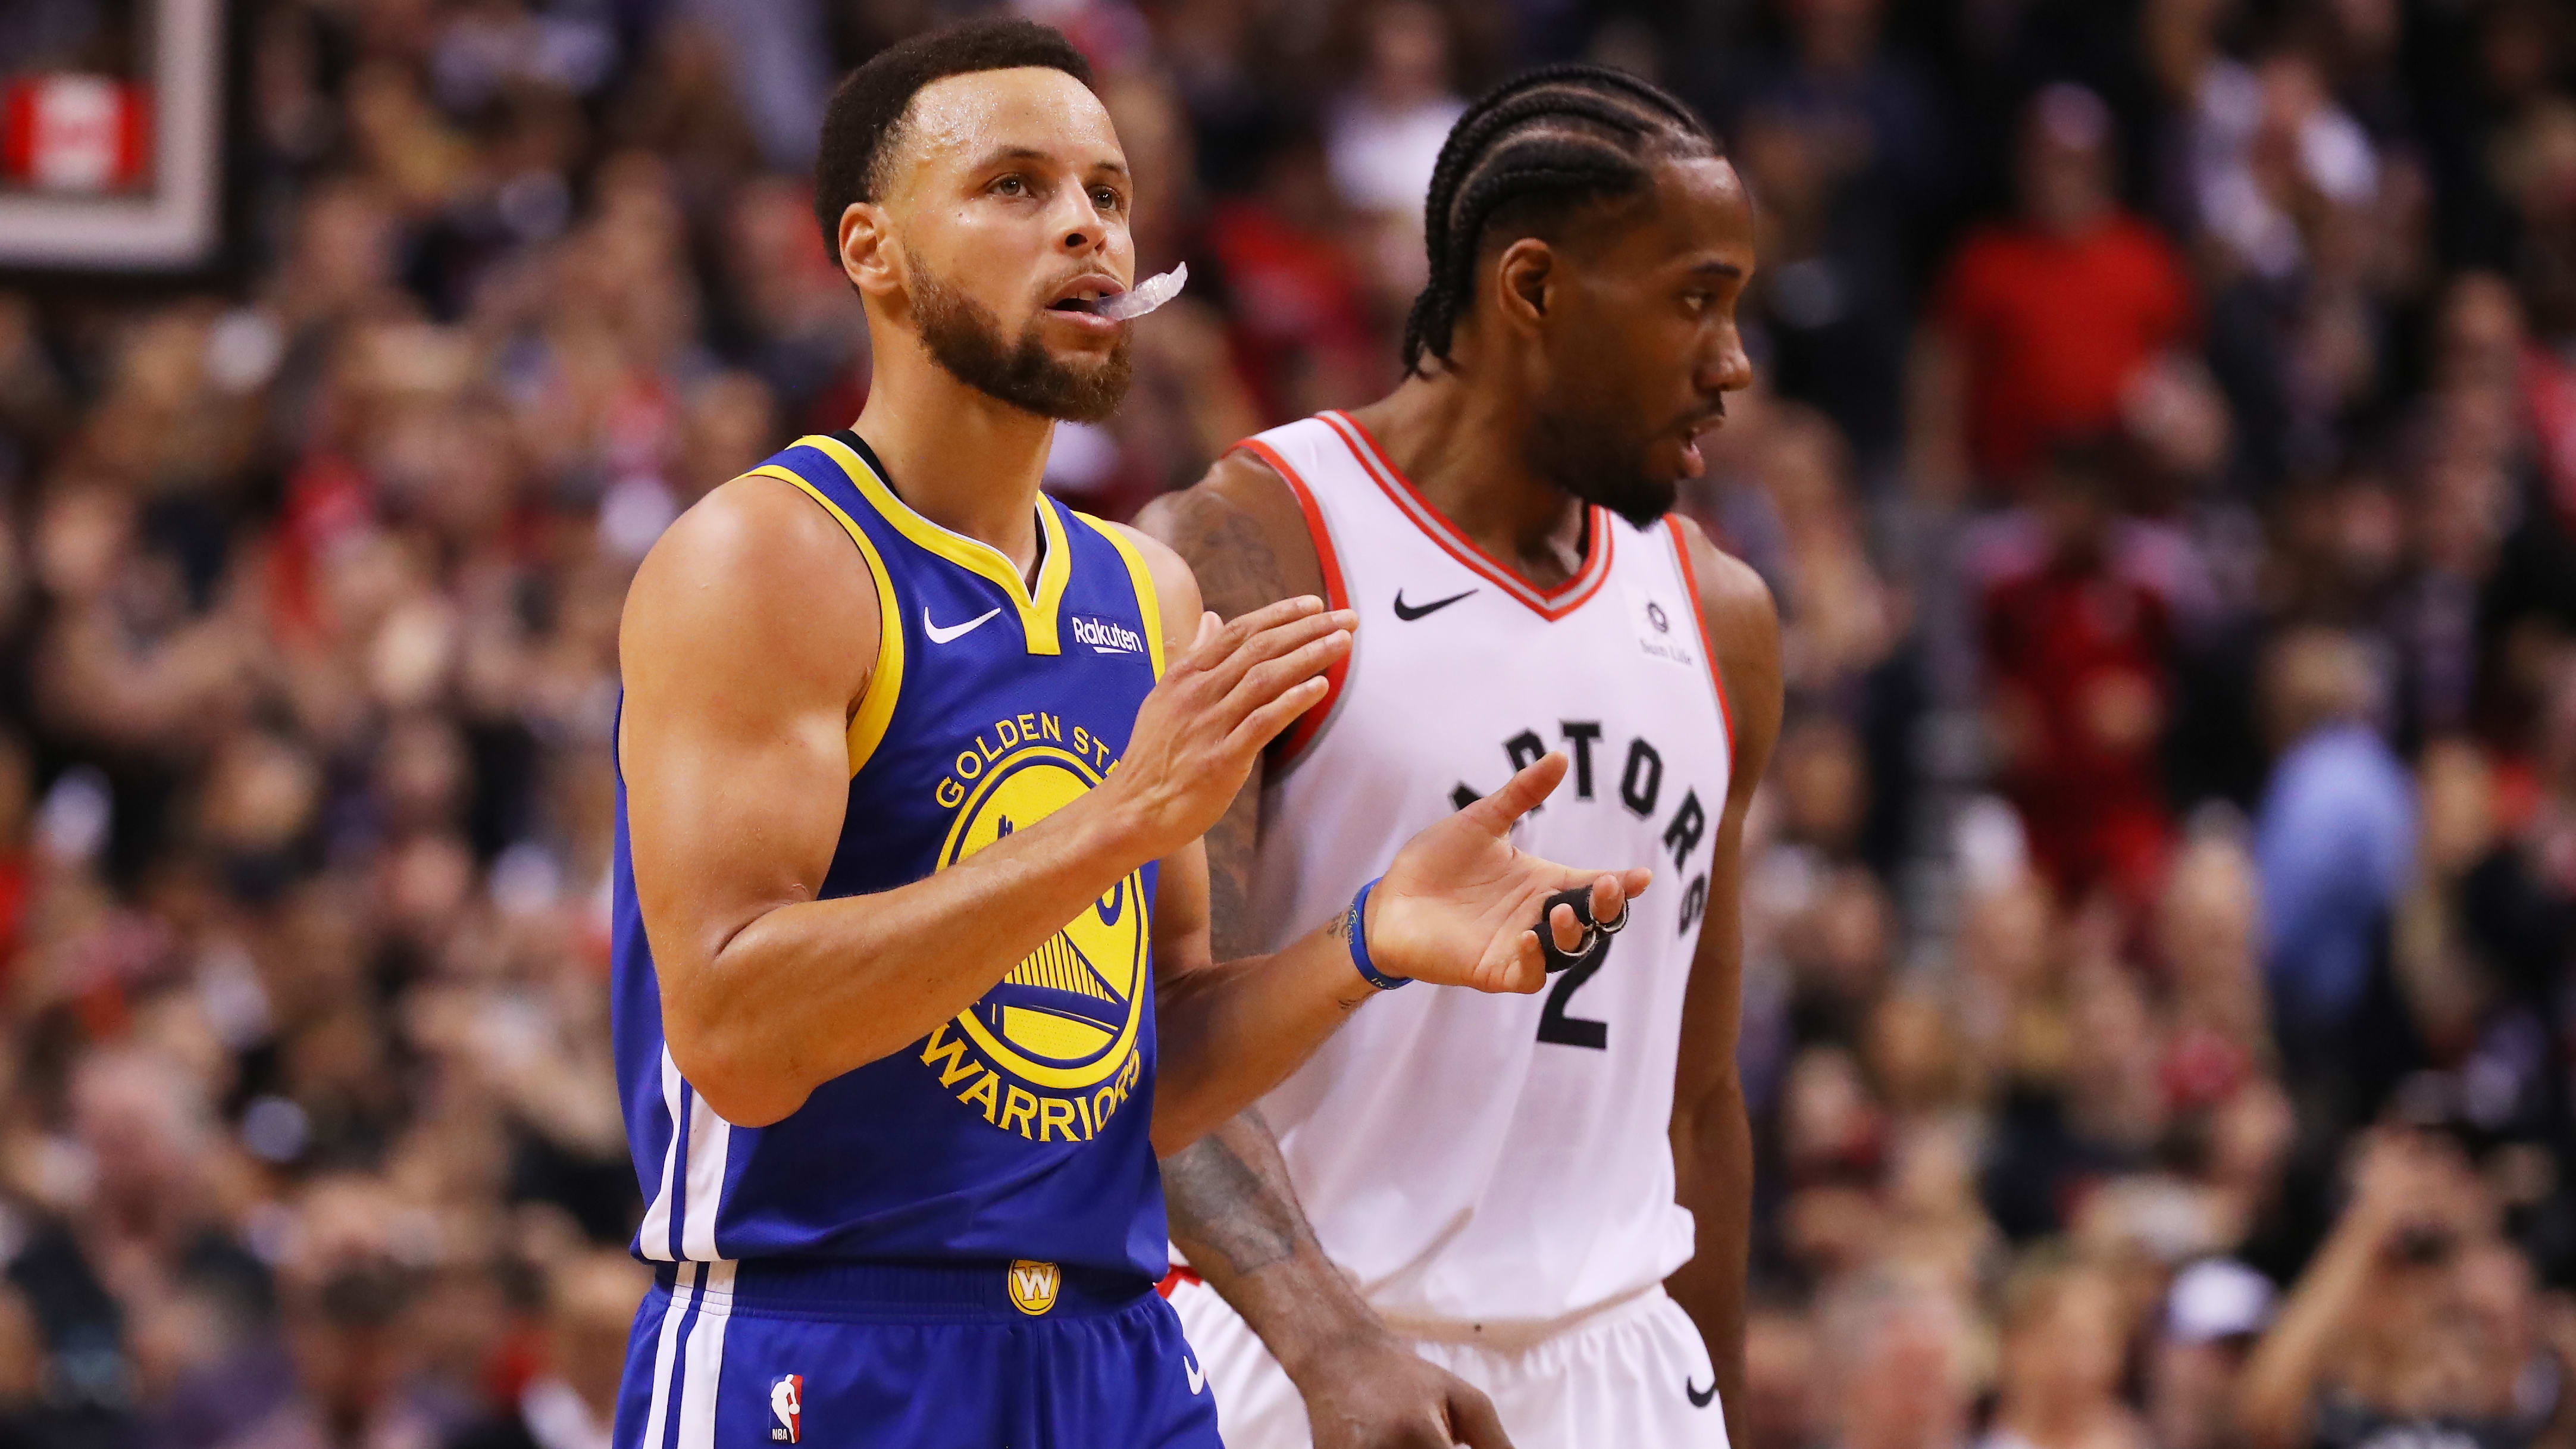 TORONTO, ONTARIO - MAY 30:  Stephen Curry #30 of the Golden State Warriors reacts against the Toronto Raptors in the second half during Game One of the 2019 NBA Finals at Scotiabank Arena on May 30, 2019 in Toronto, Canada. NOTE TO USER: User expressly acknowledges and agrees that, by downloading and or using this photograph, User is consenting to the terms and conditions of the Getty Images License Agreement. (Photo by Gregory Shamus/Getty Images)